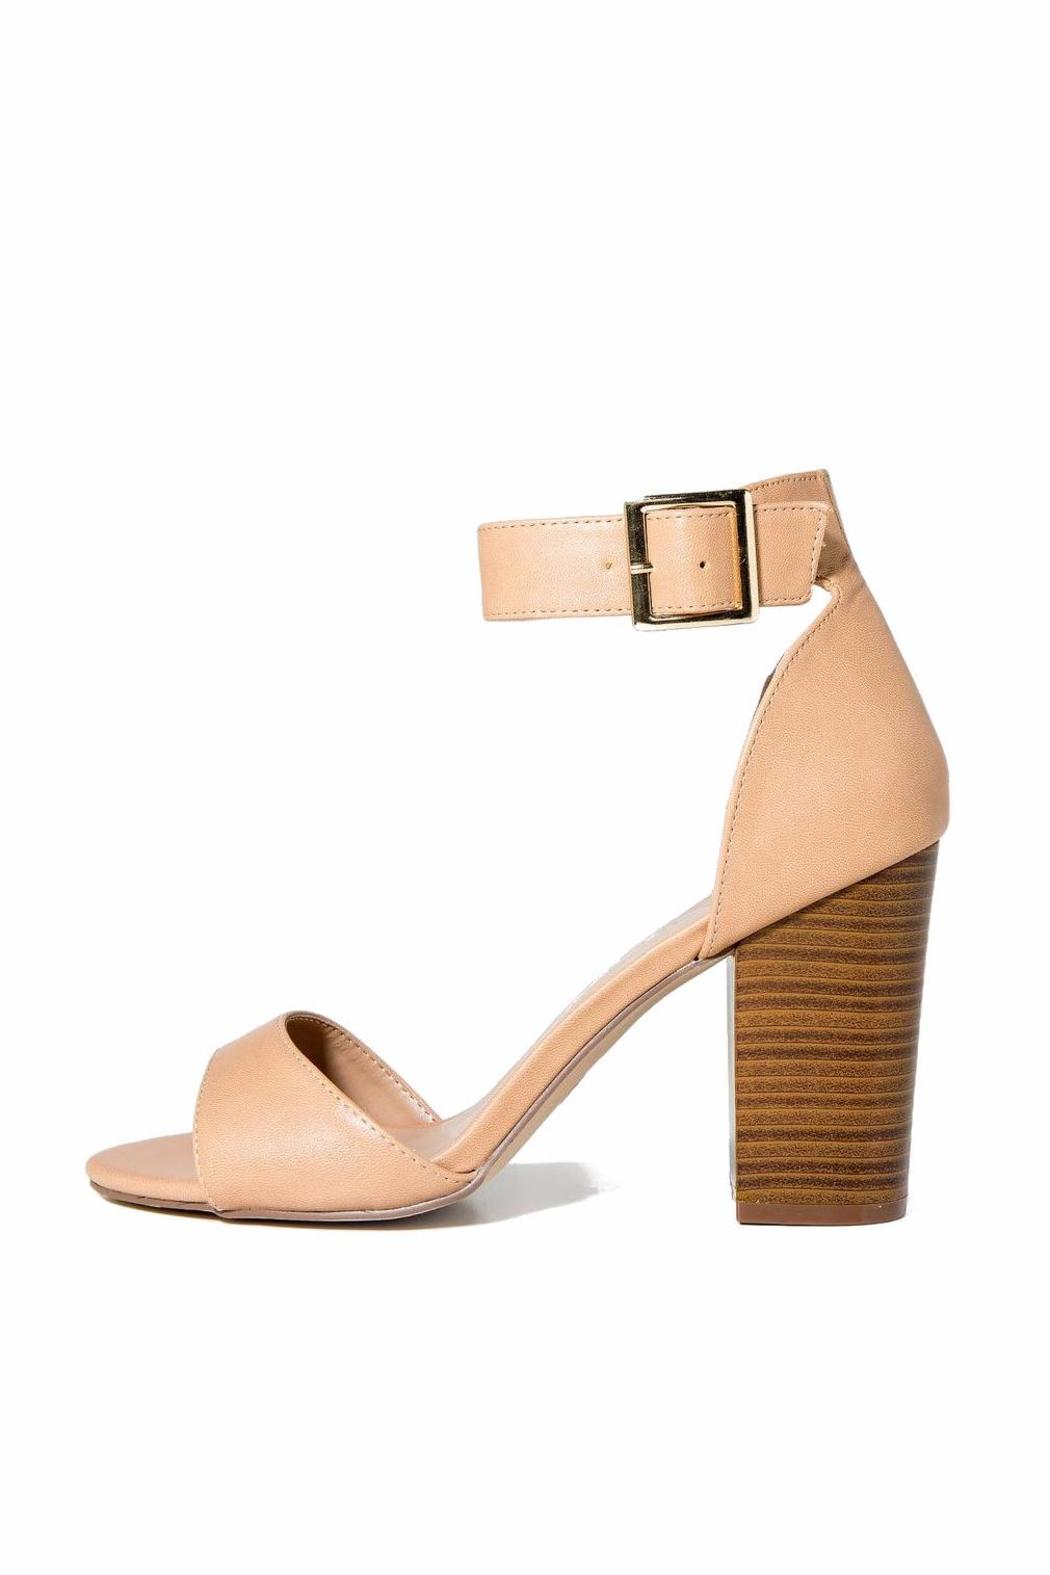 Breckelle's Ankle Strap-Chunky Heel - Main Image